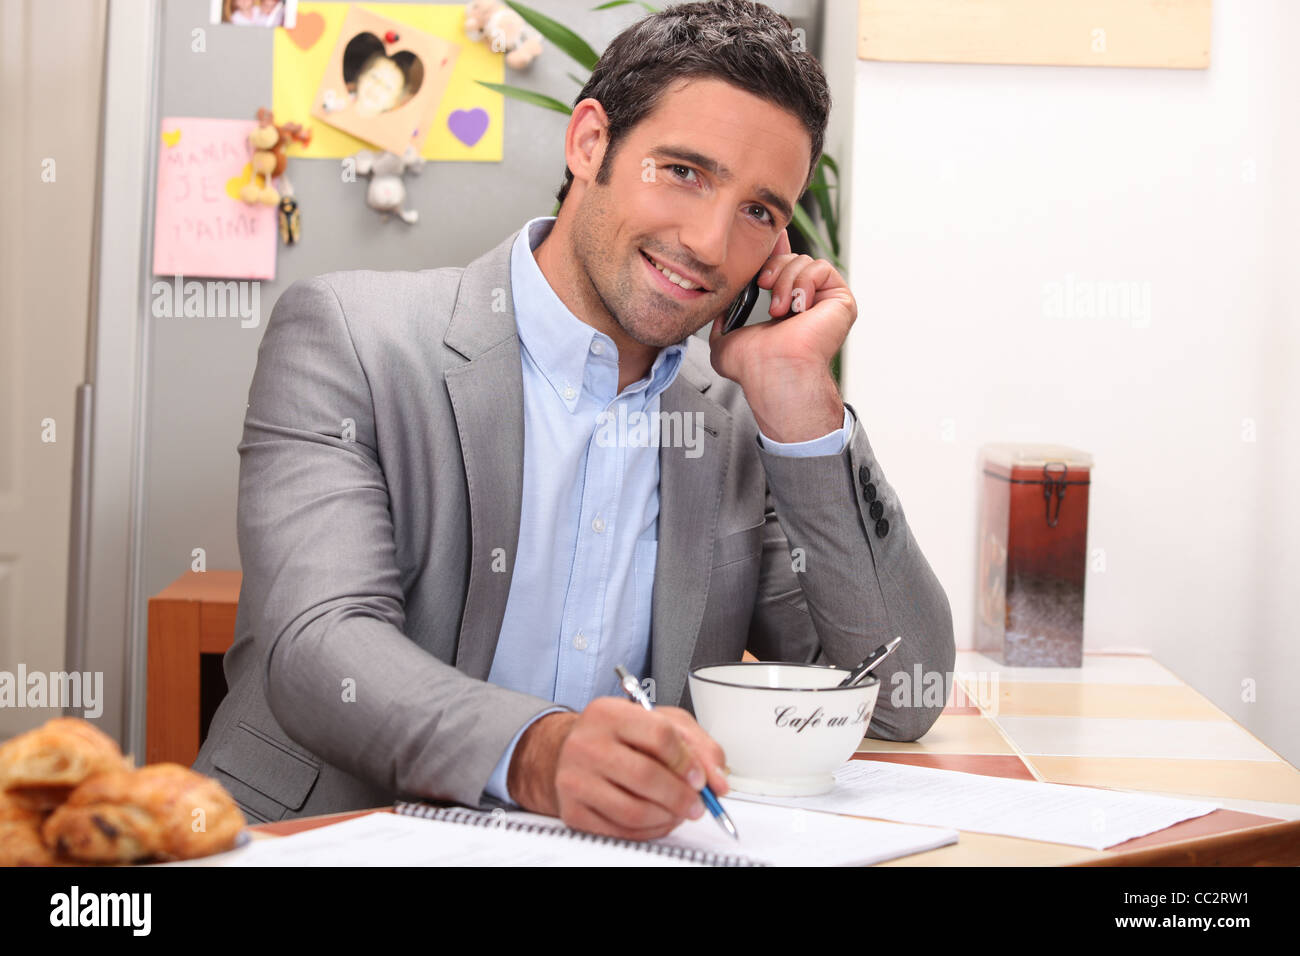 Man taking a business call over breakfast - Stock Image